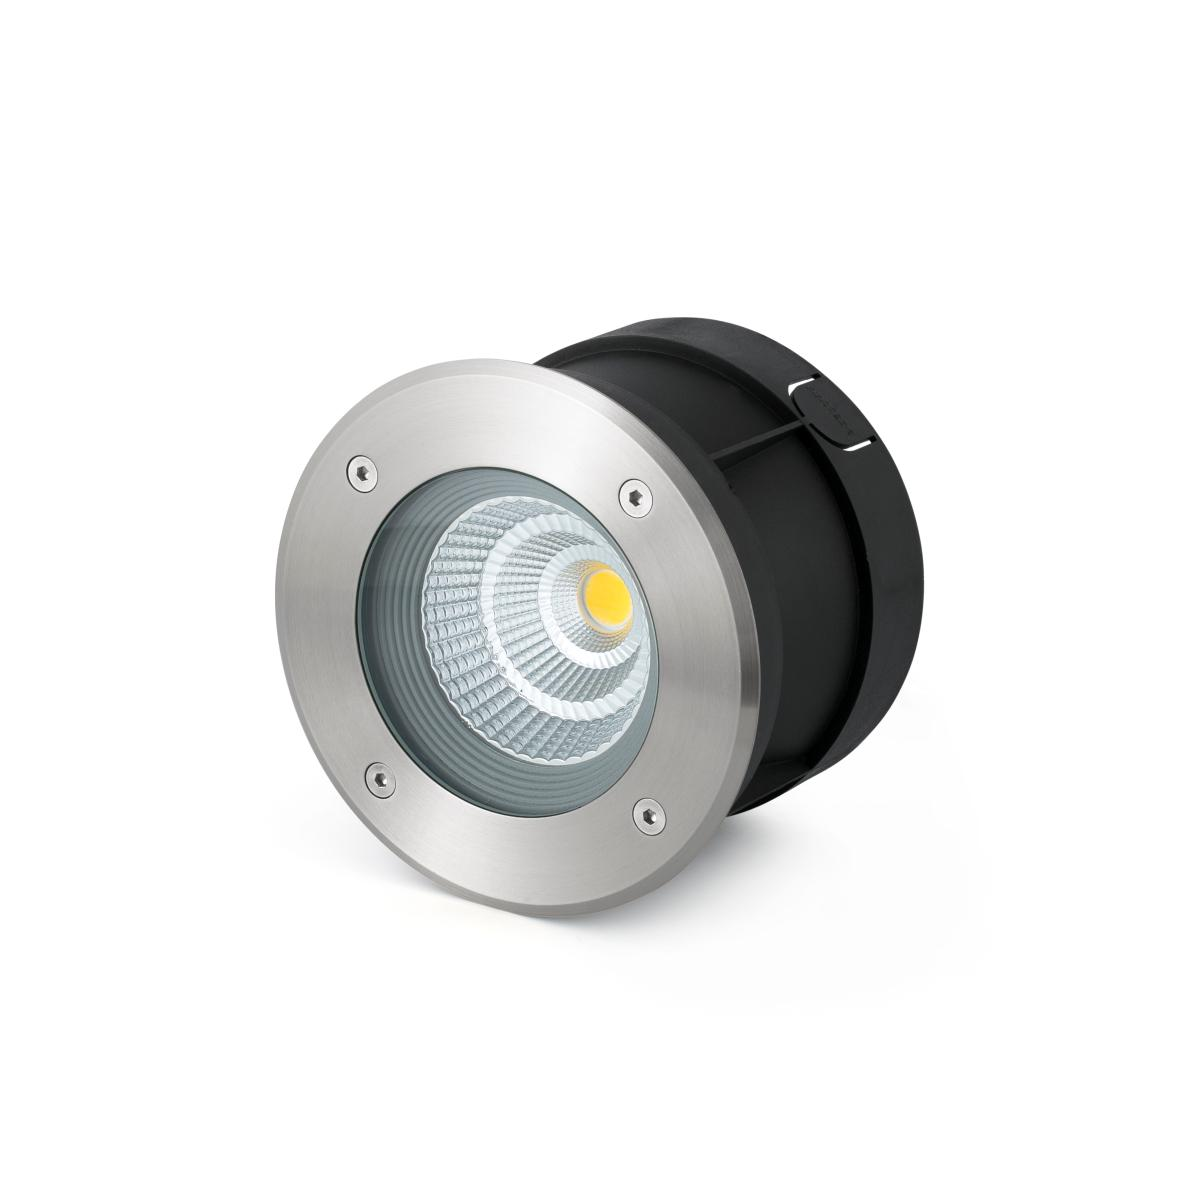 Eclairage Led Encastrable Exterieur Spot Encastrable Exterieur Led Ip67 12w 24 Inox 316 Faro